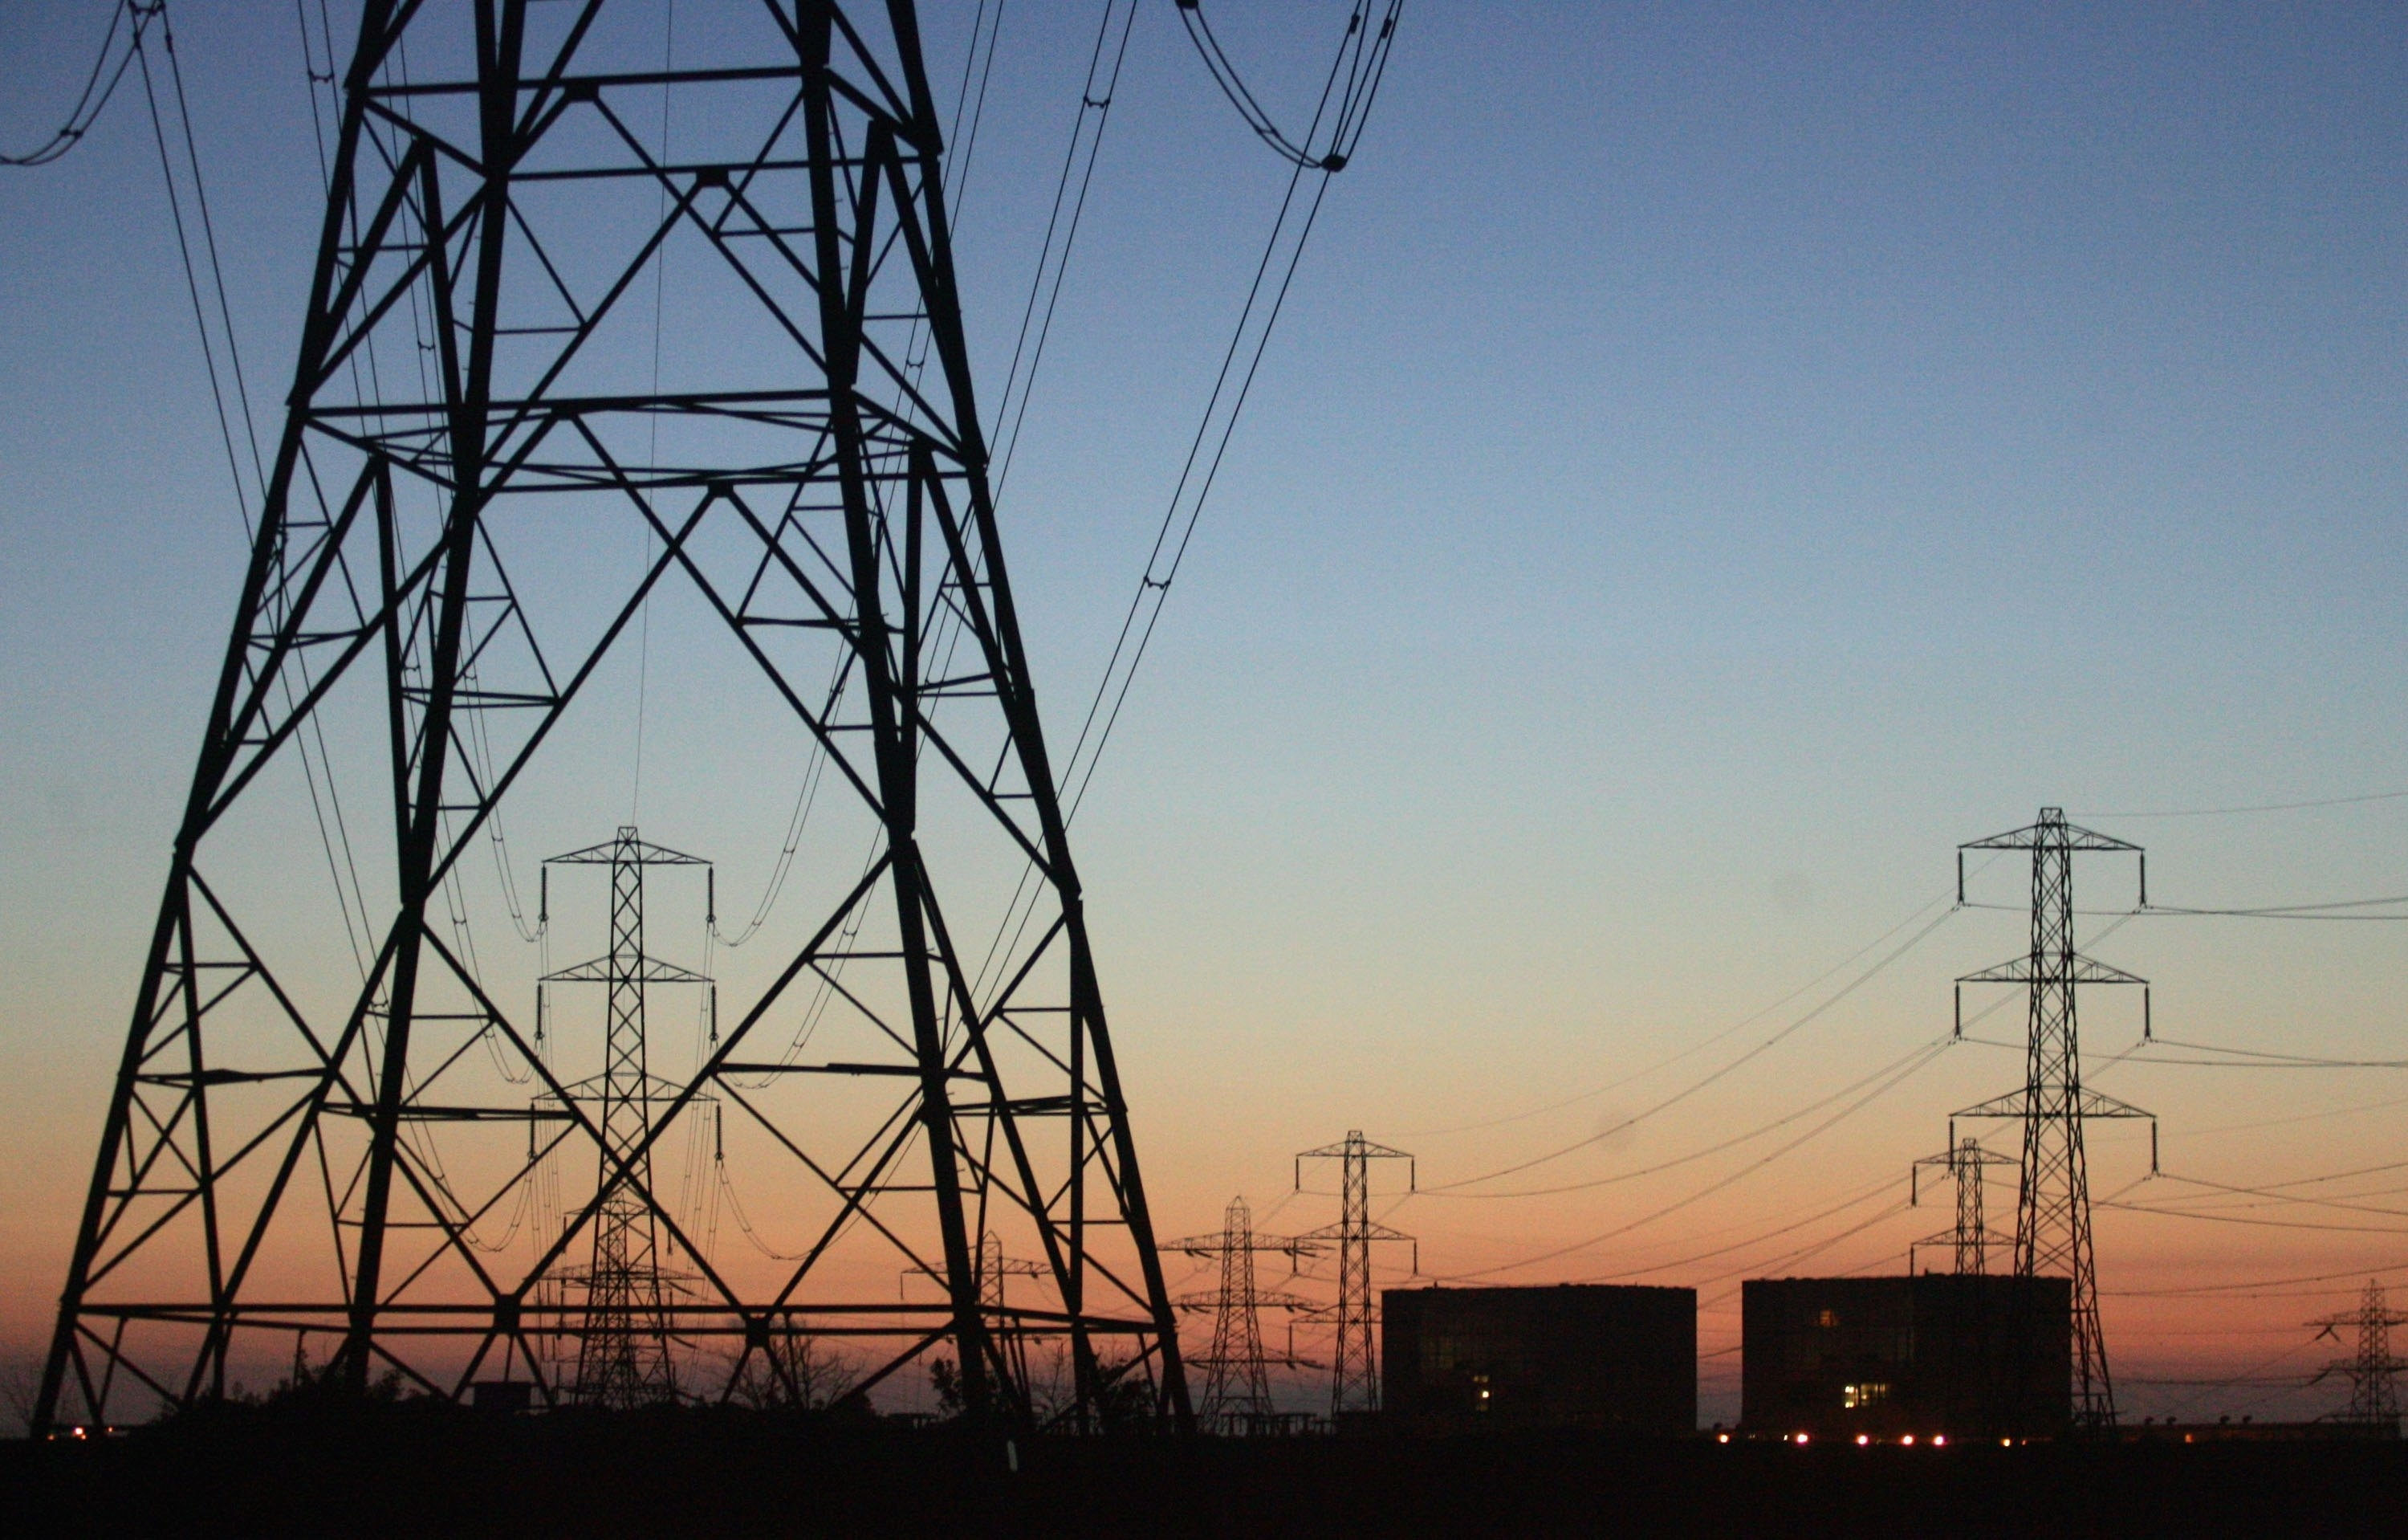 Iraq set to implement 11 power projects in Babel